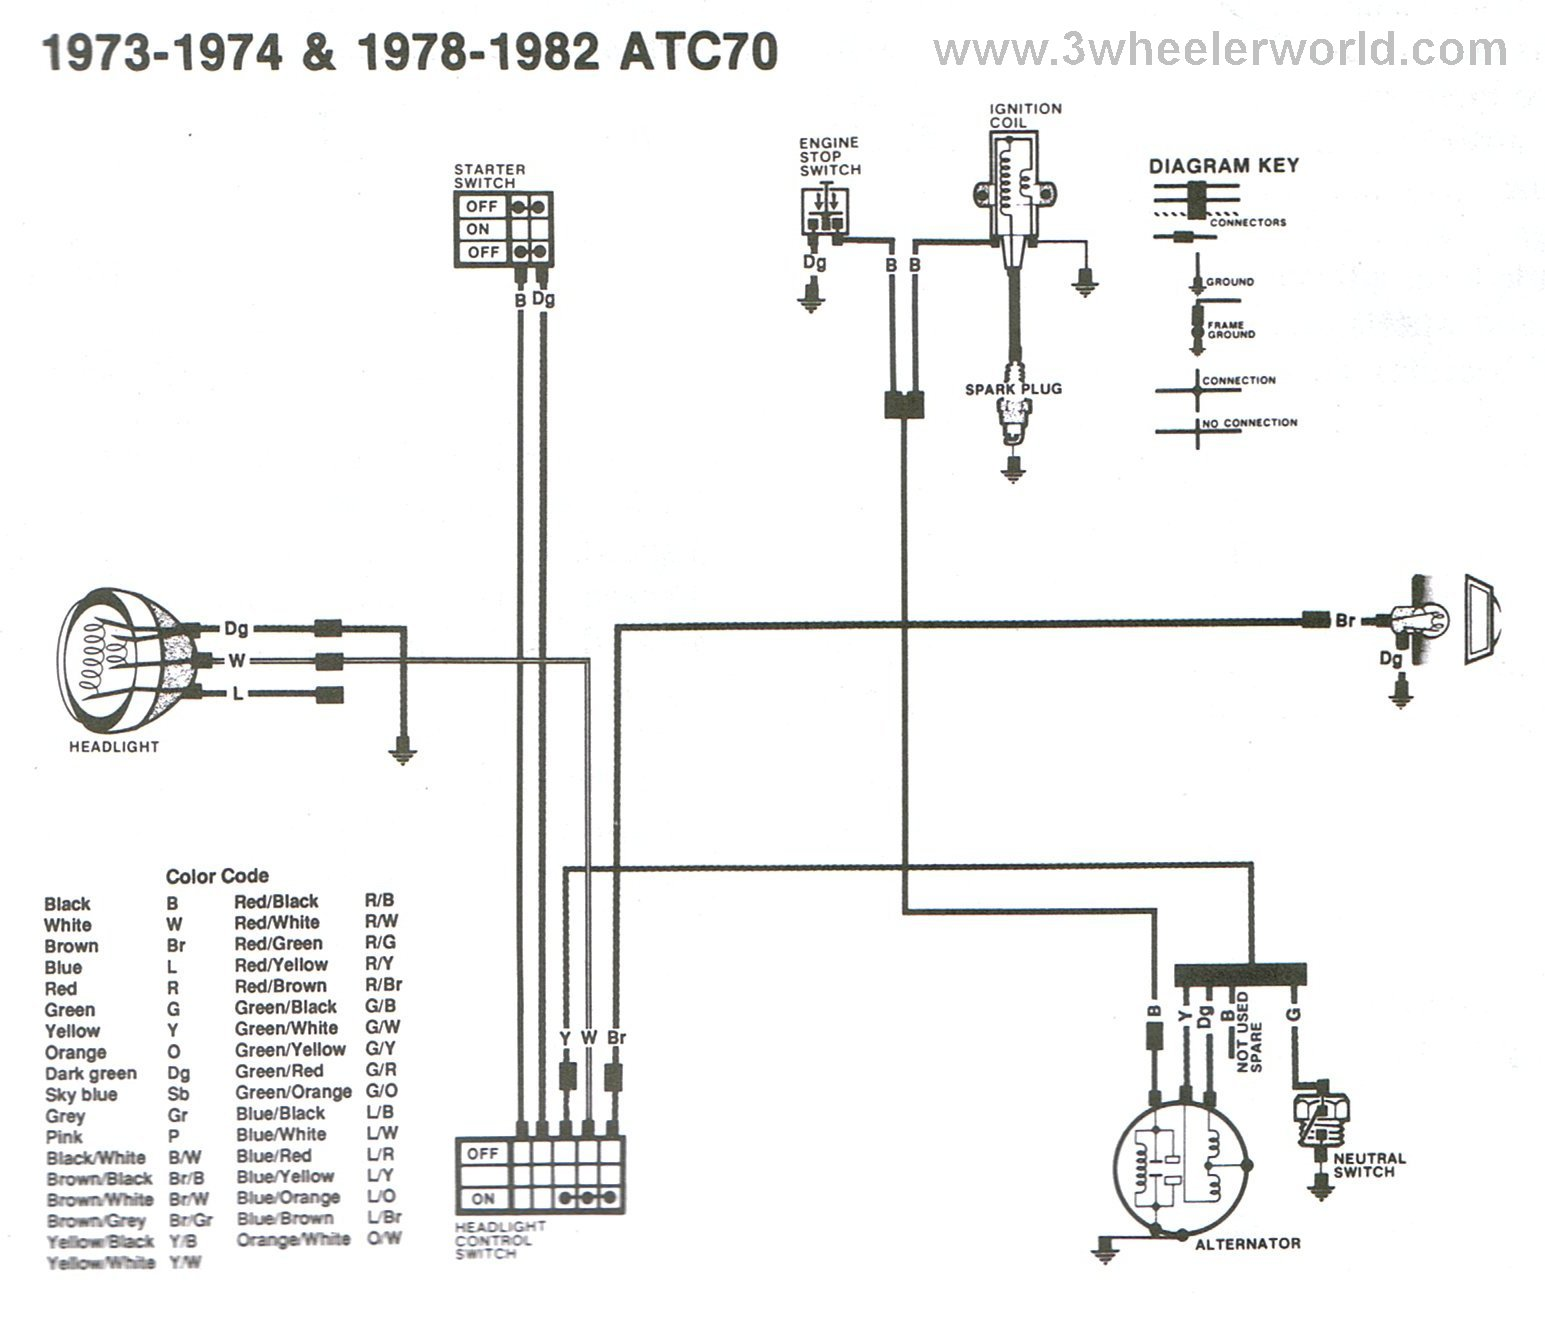 post 4946 1235948993 atc 70 wiring diagram honda 70 talk dumont dune riders wiring diagram 1985 honda 250 fourtrax at bakdesigns.co